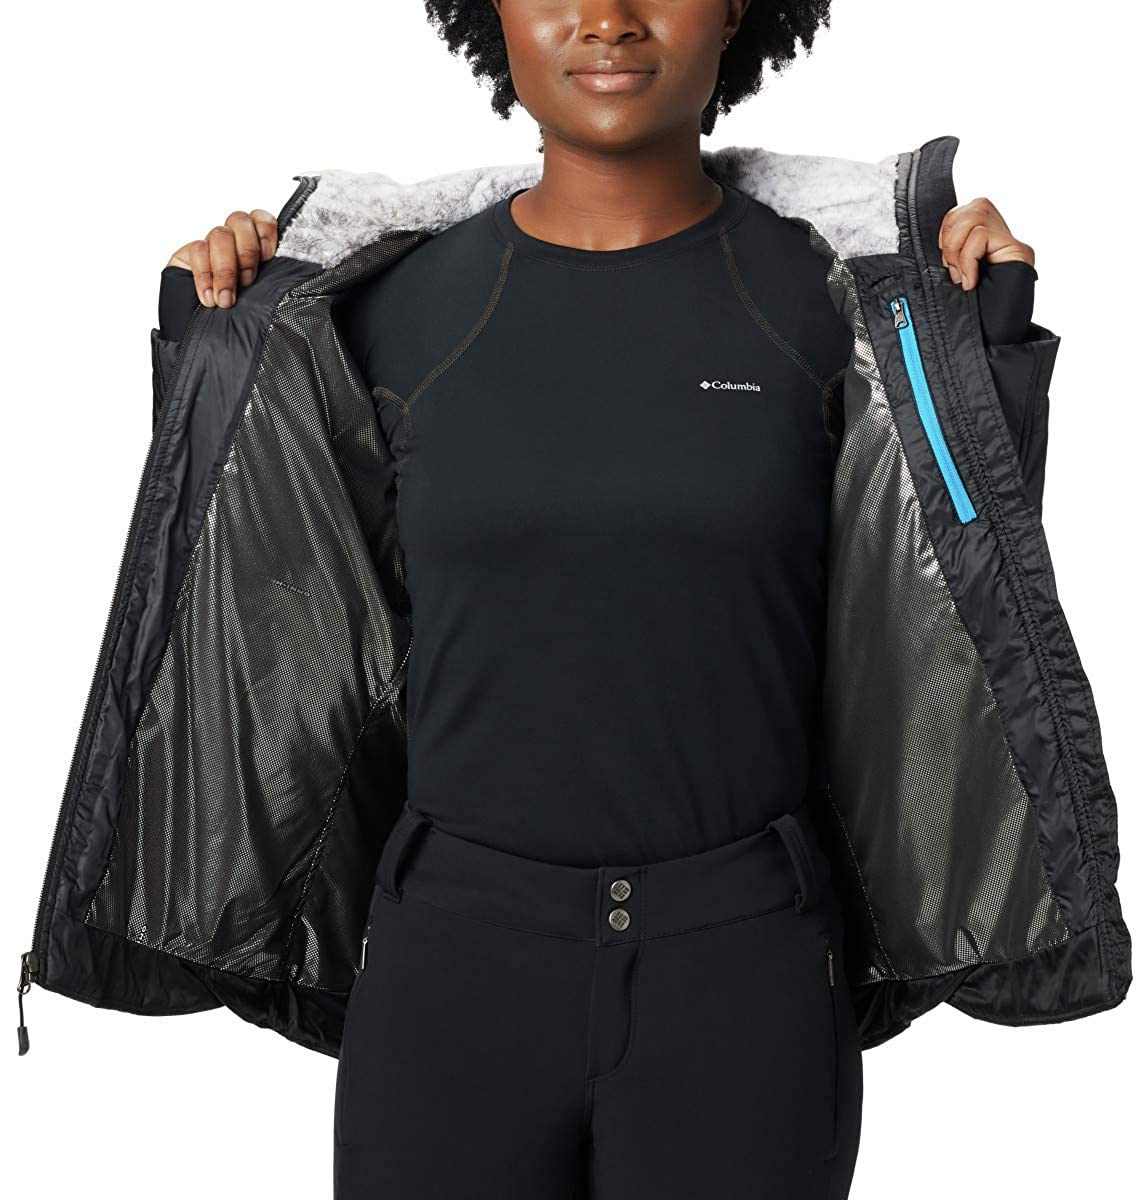 Columbia Womens Kaleidaslope II Jacket, Waterproof & Breathable